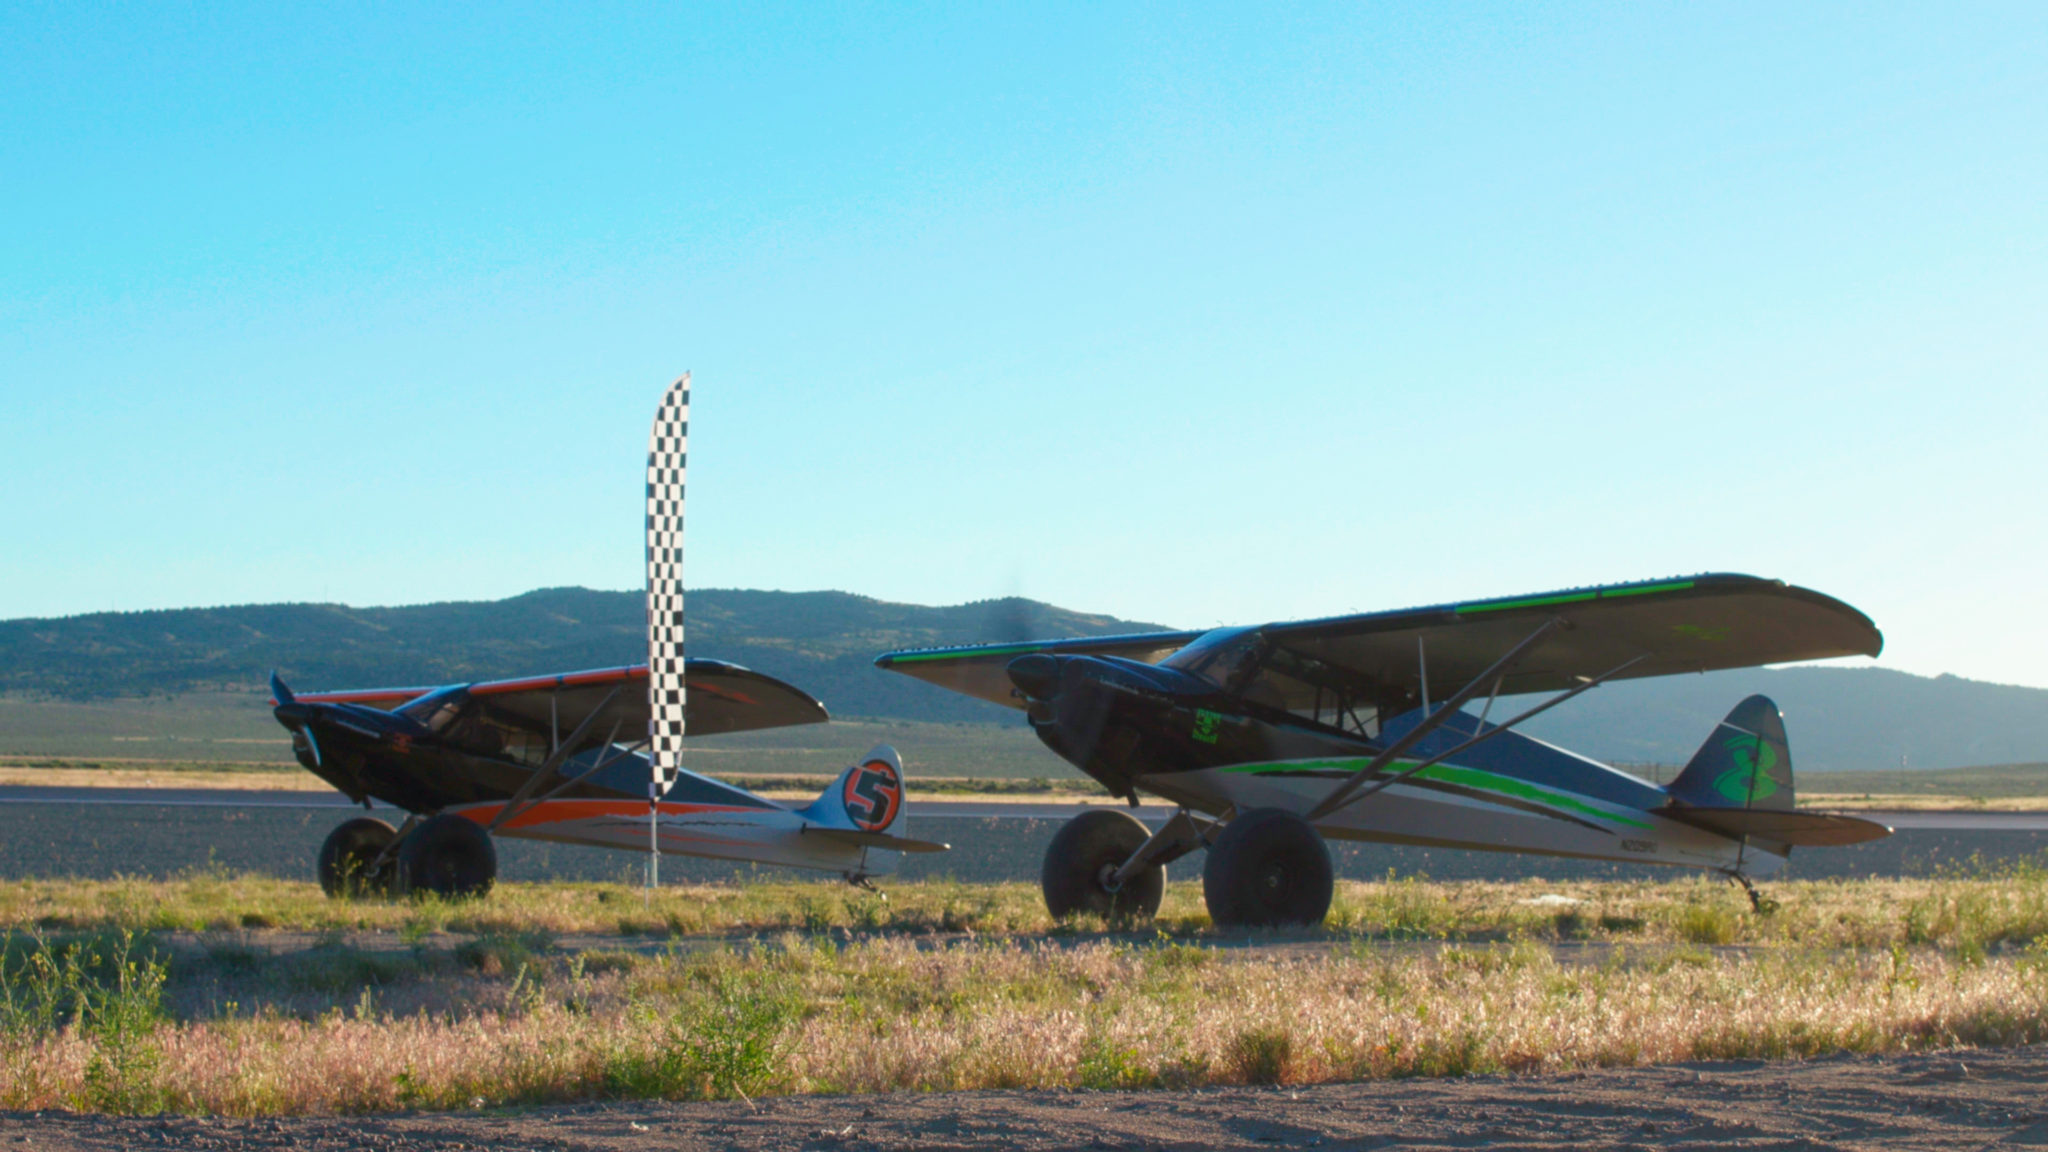 STOL Drag Racing Added as New Racing Class for 2020 Event